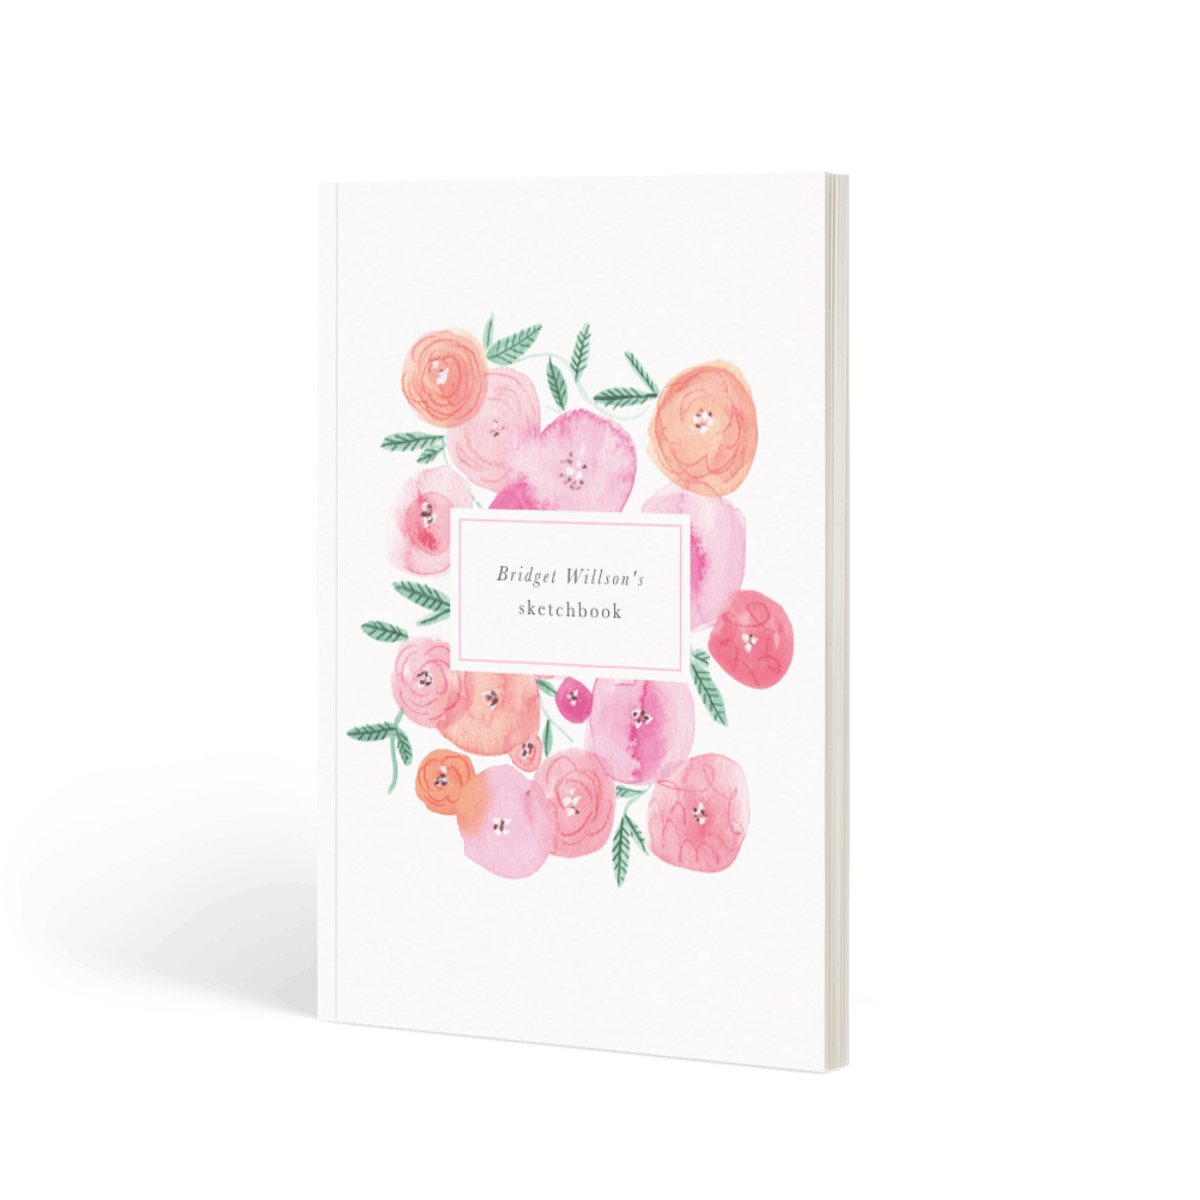 Https%3a%2f%2fwww.papier.com%2fproduct image%2f46111%2f3%2fspring ranunculus 11369 front 1536240000.png?ixlib=rb 1.1